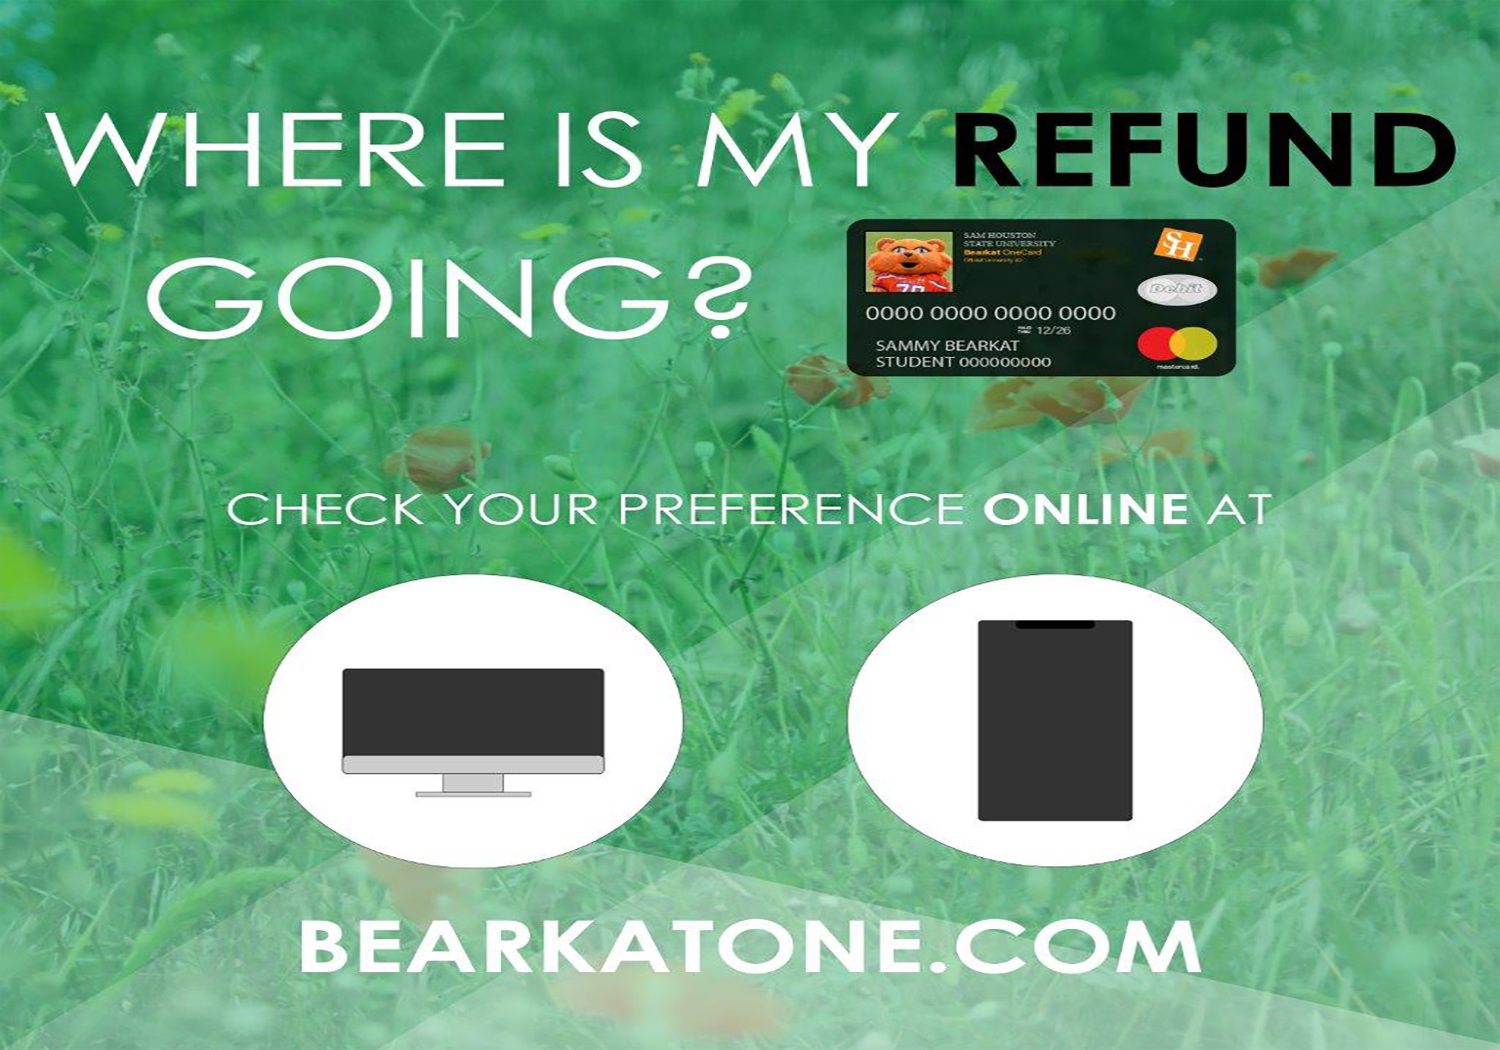 Change your refund preference at bearkatone.com